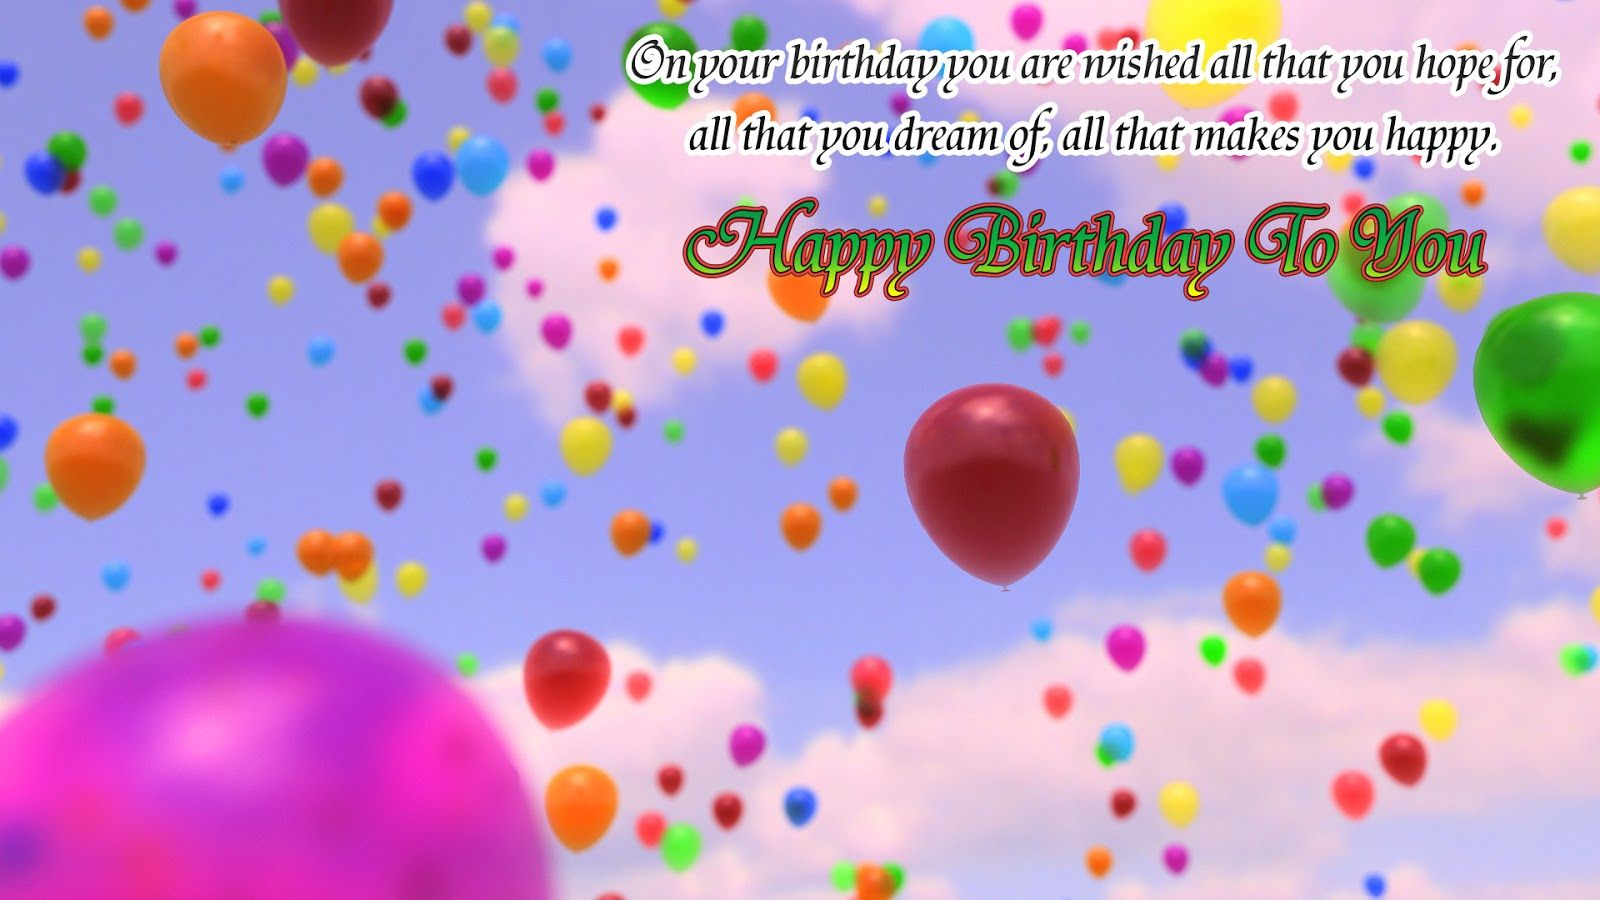 Birthday Quotes Birthday Quotes Pinterest – Sister Birthday Greetings Quotes